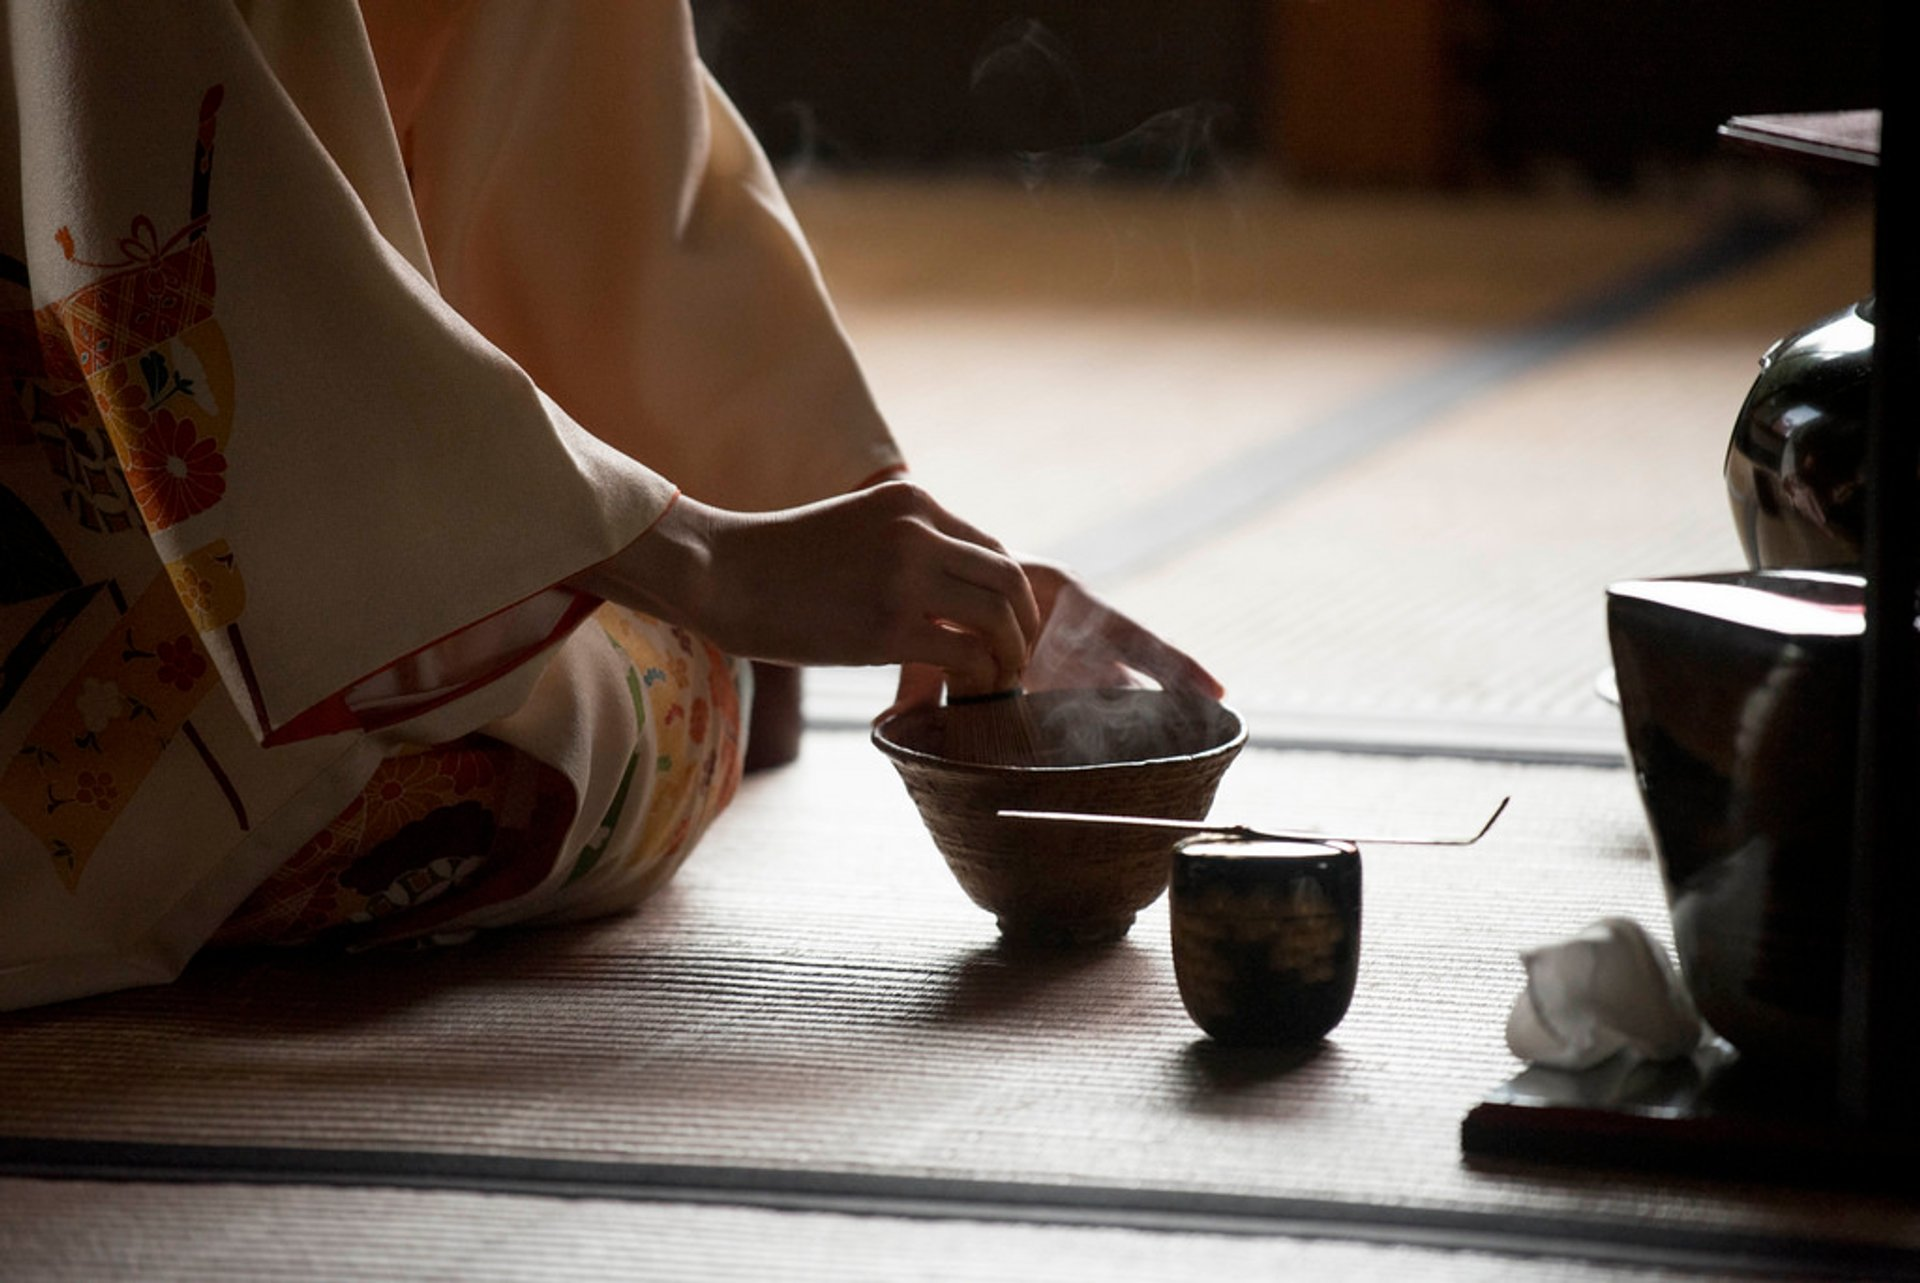 Tea Ceremony in Kyoto 2020 - Best Time